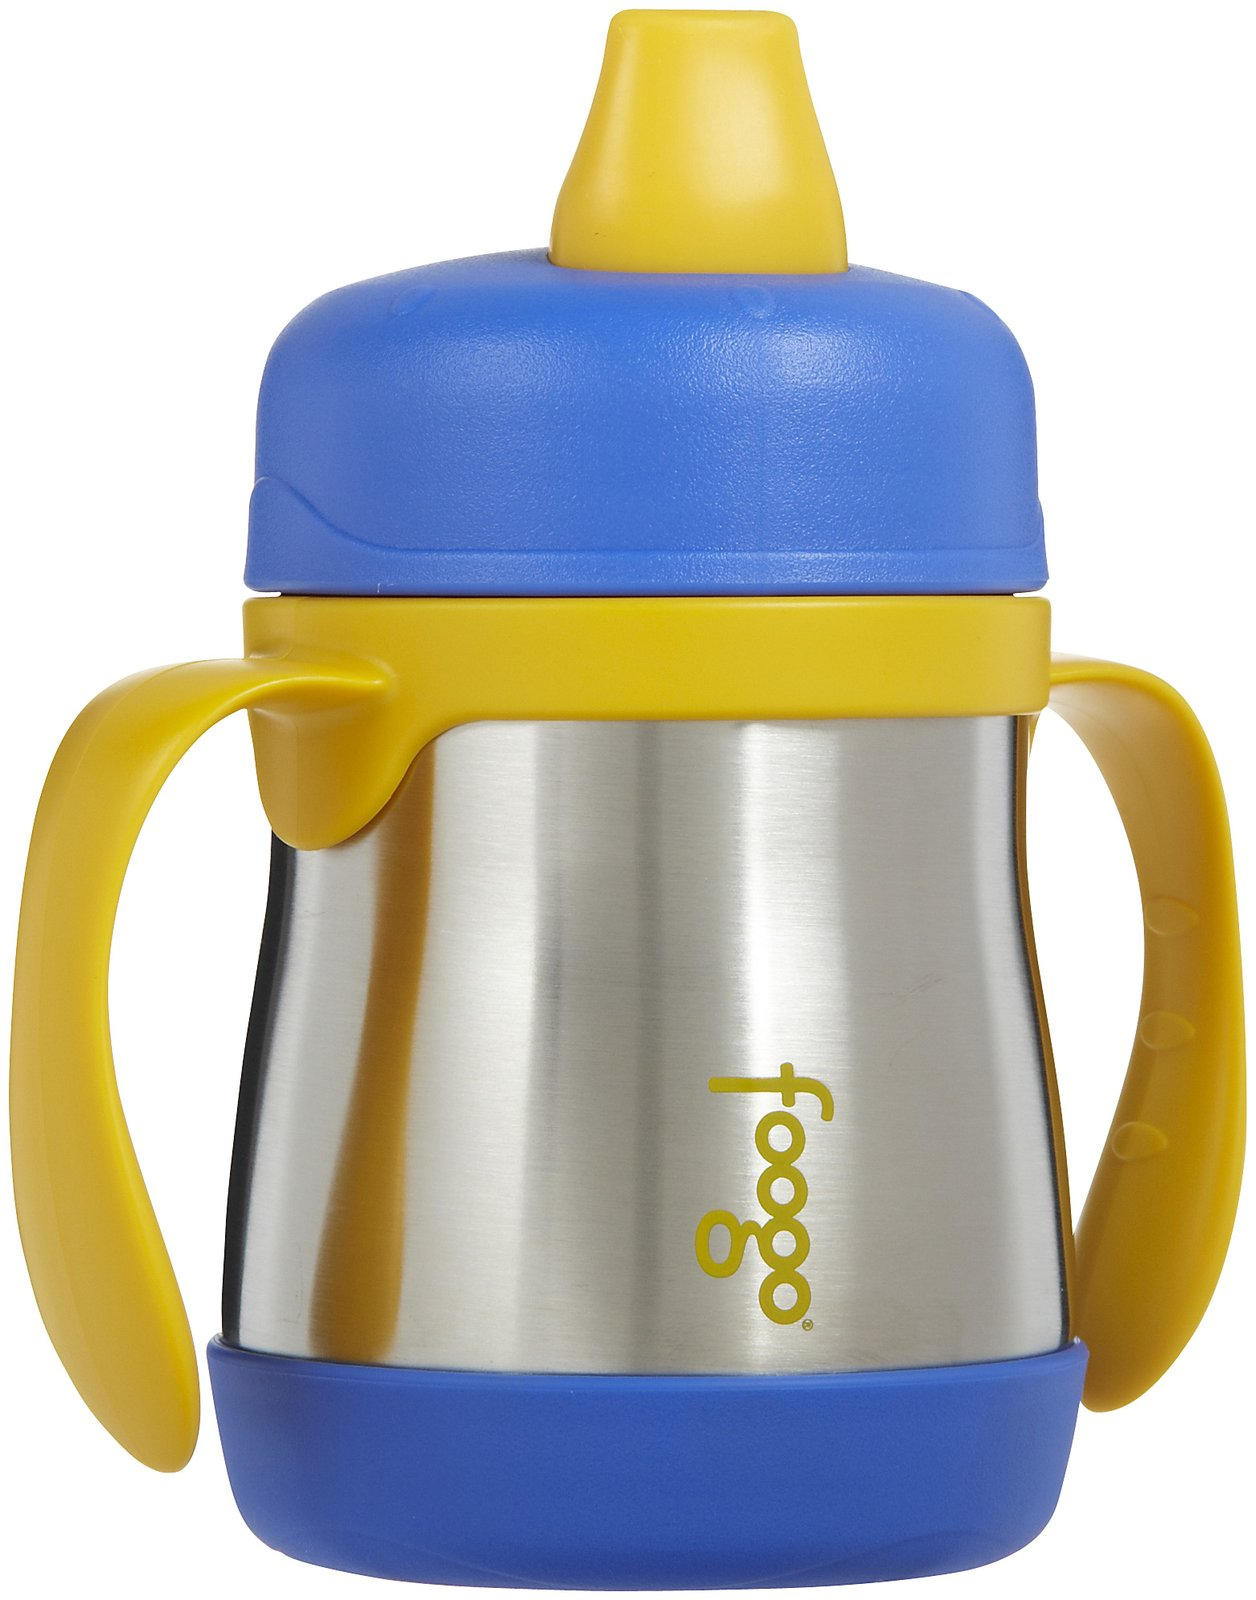 Thermos Foogo Insulated Sippy Cup - $16.40